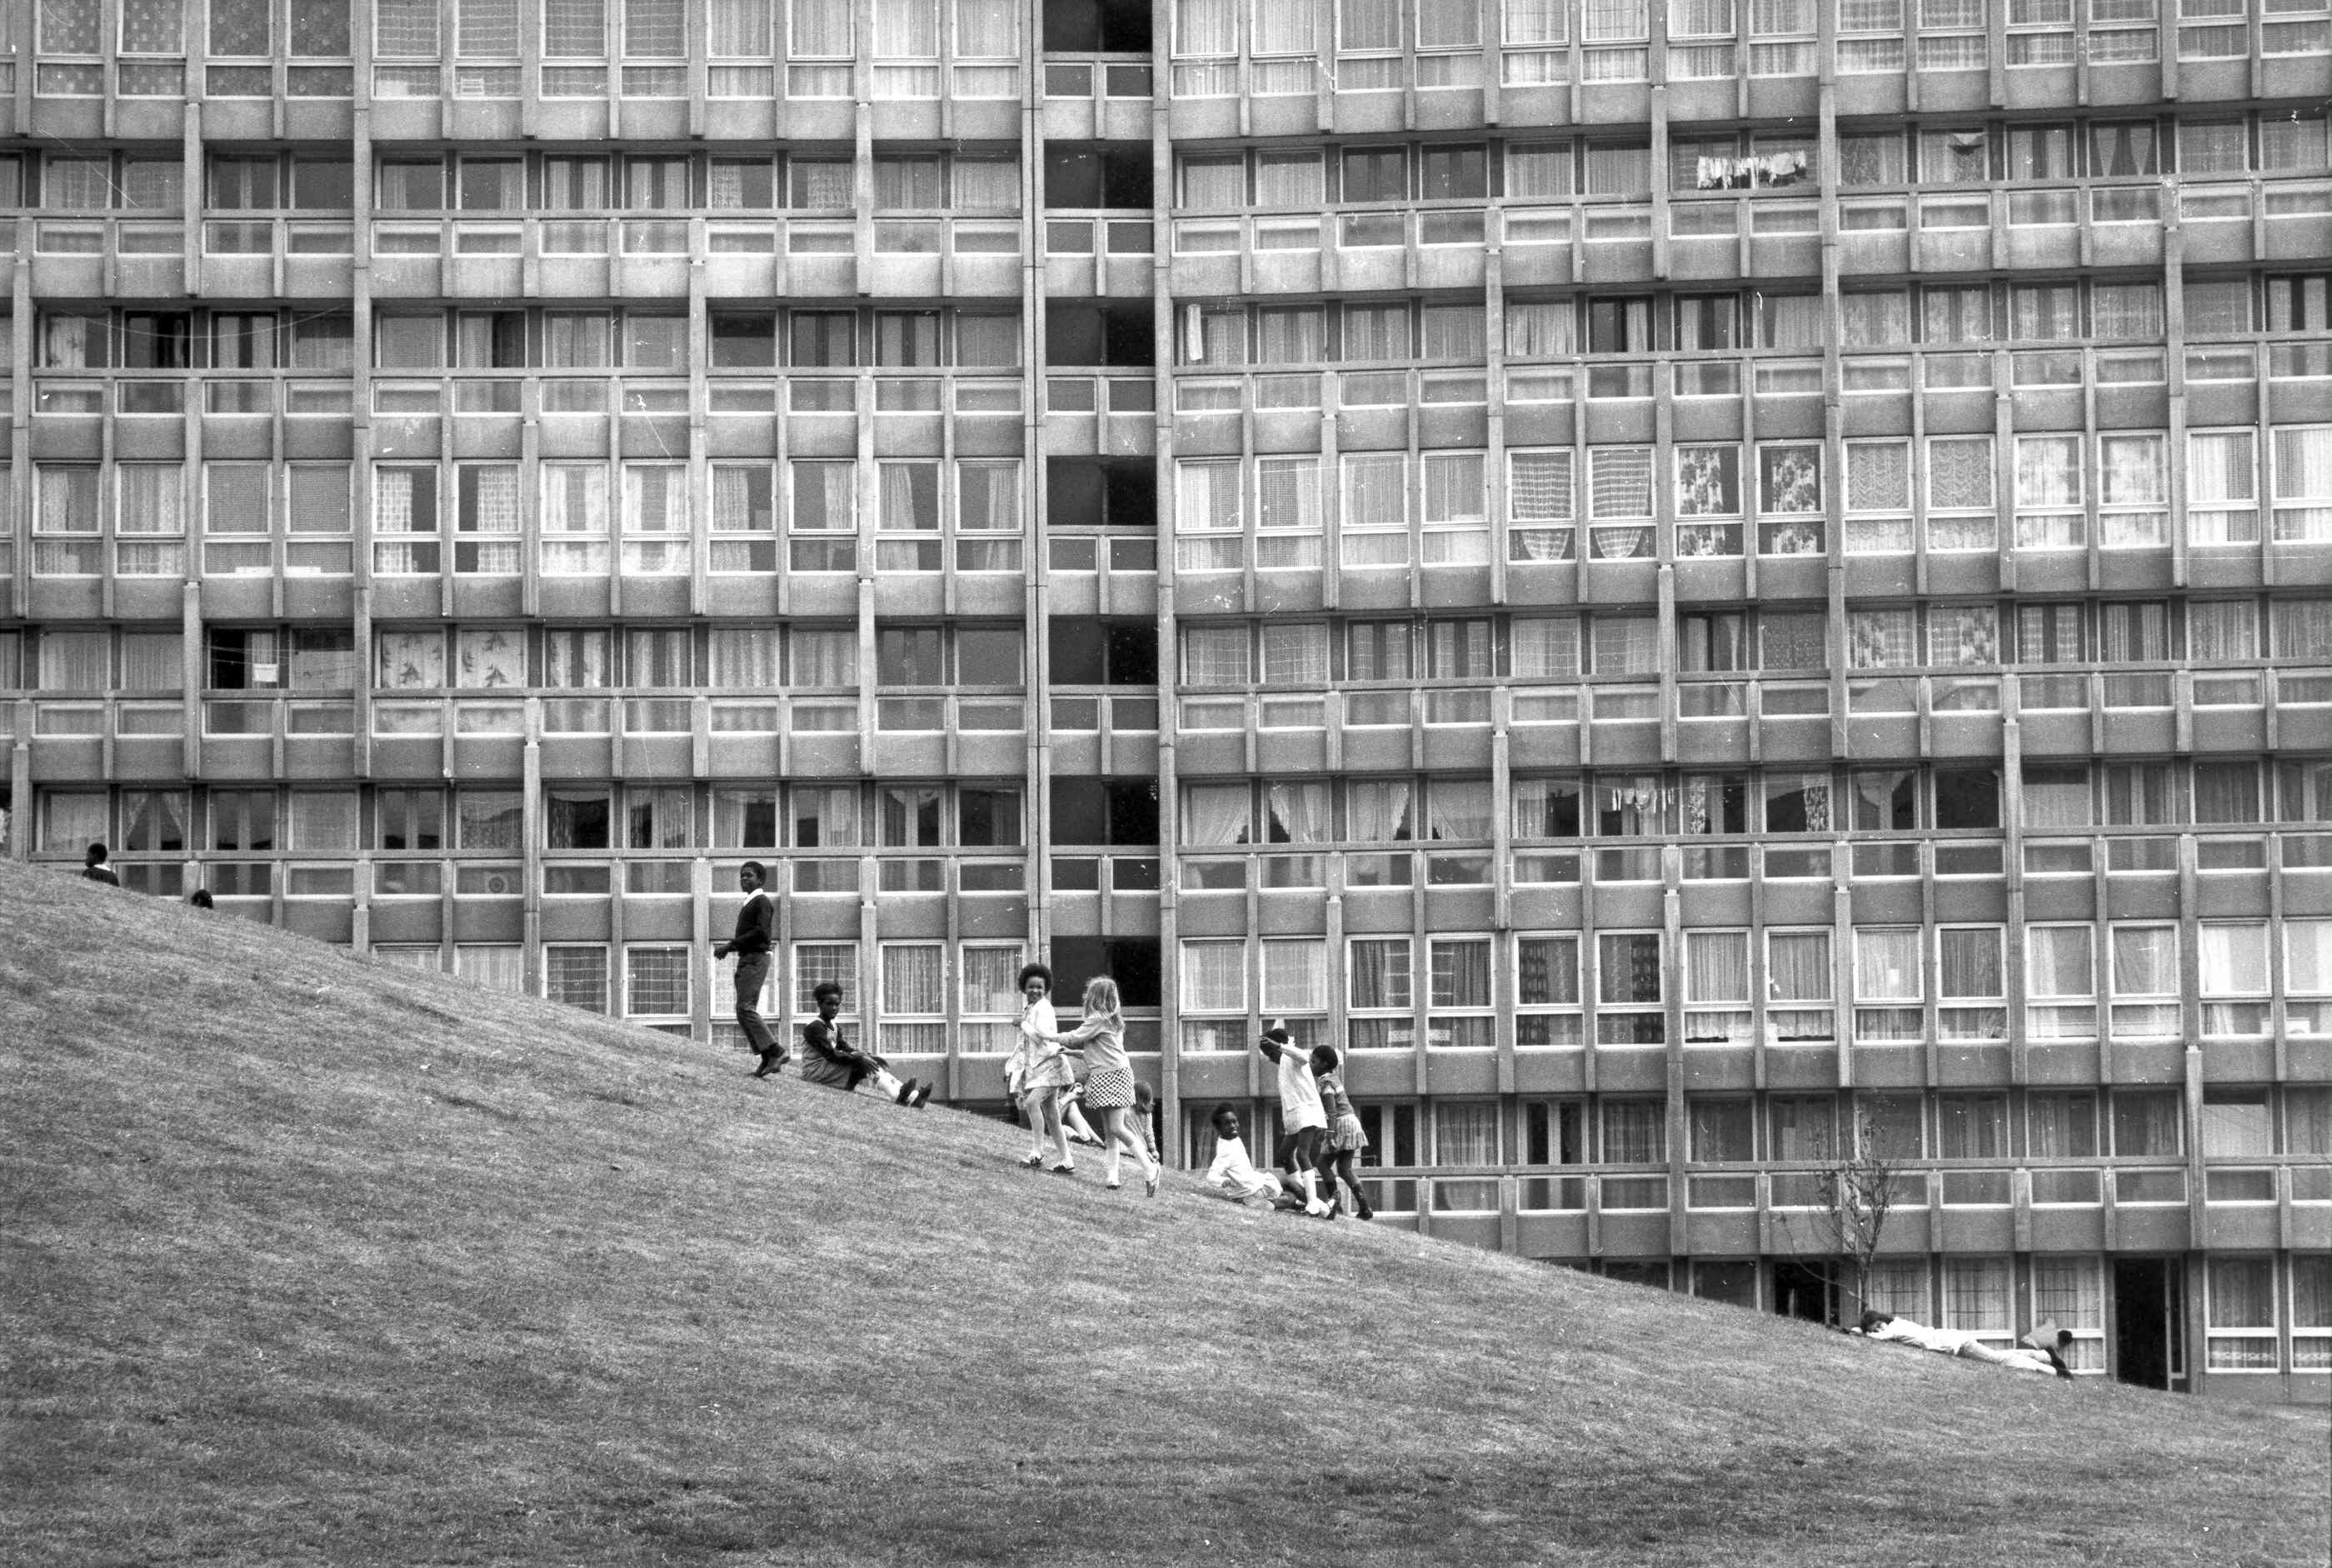 Robin Hood Gardens – Tower Hamlets – designed in the late 1960s by architects Alison and Peter Smithson. Photo: Sandra Lousada, 1972 © The Smithson Family Collection